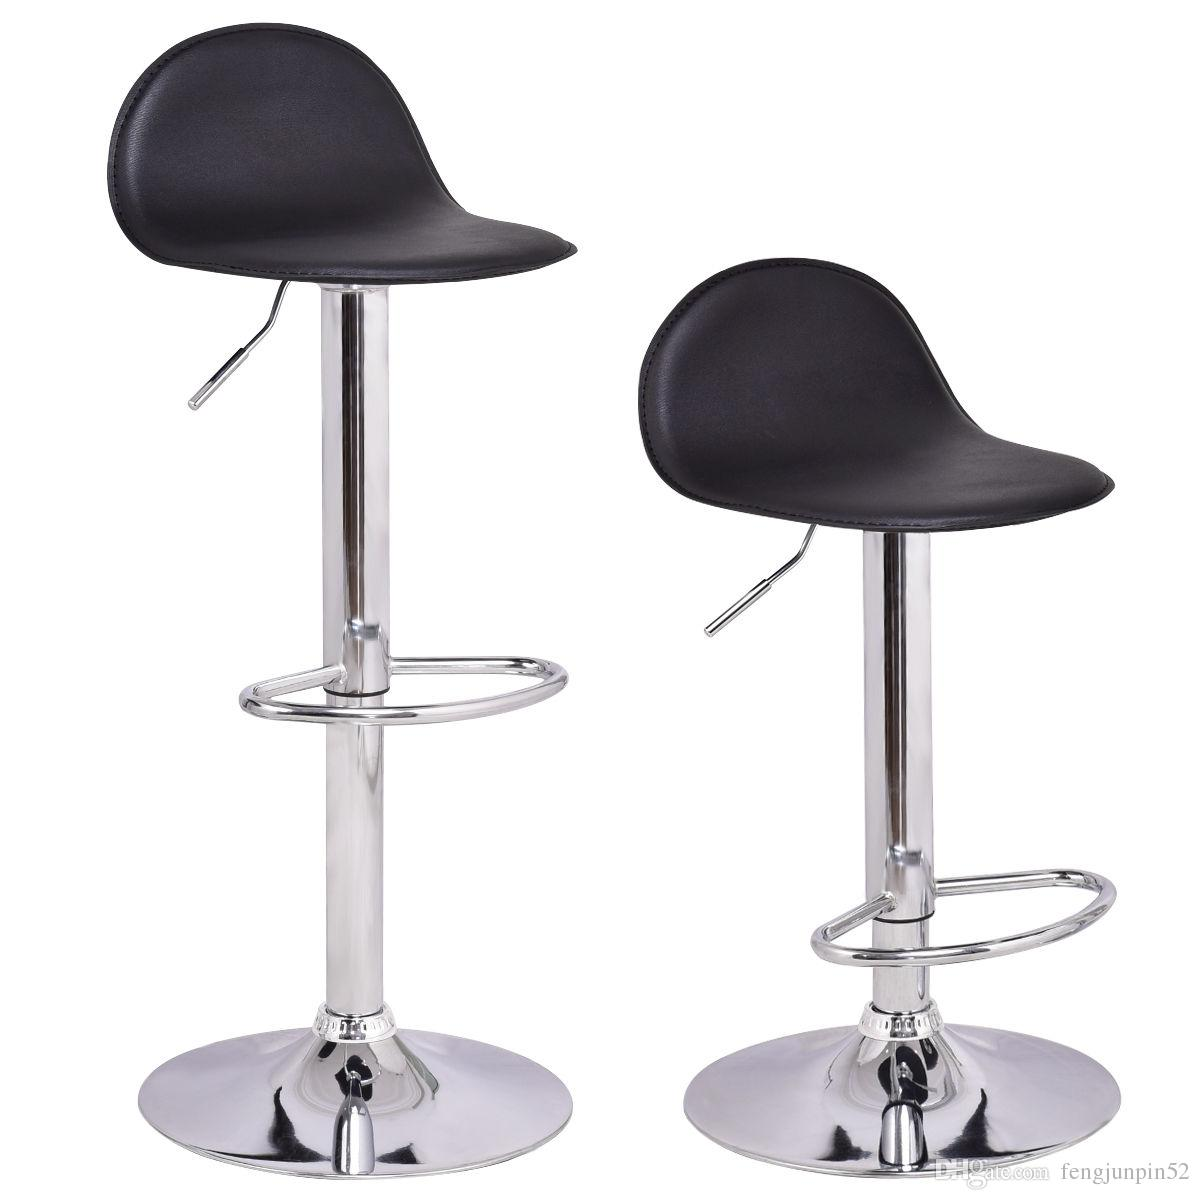 of 2 swivel bar stools modern adjustable height diner seat chairs black from fengjunpin52 5026 dhgatecom - Modern Swivel Bar Stools